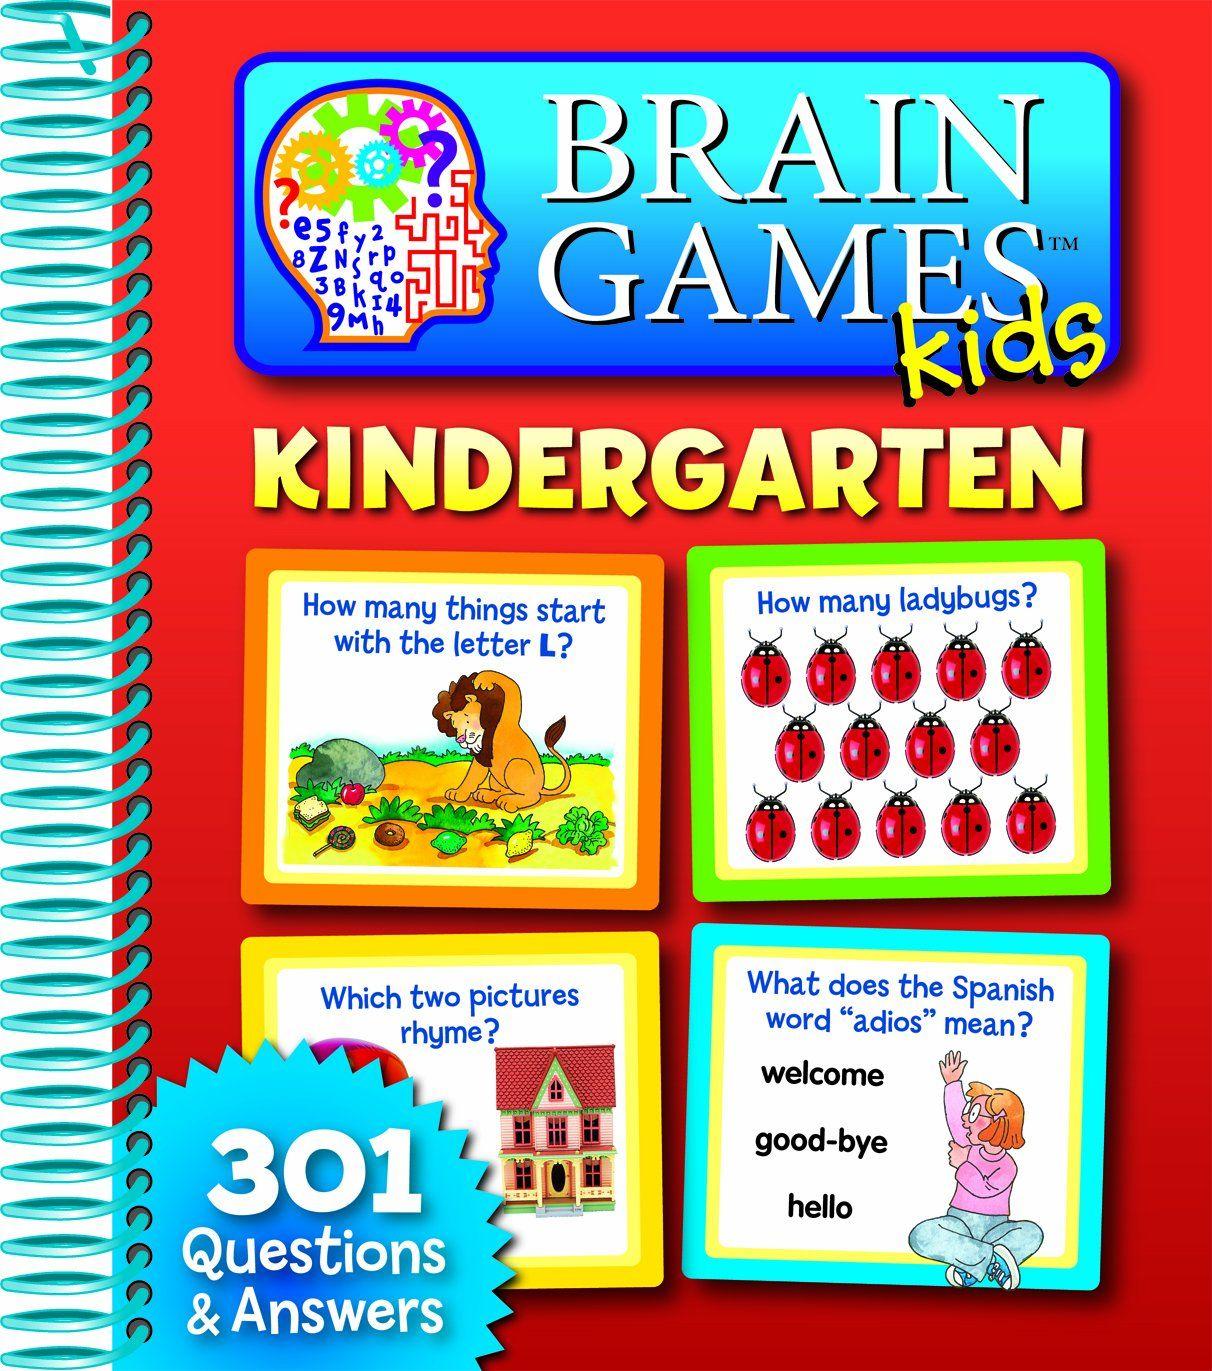 Brain Games Kids Kindergarten Price 9 17